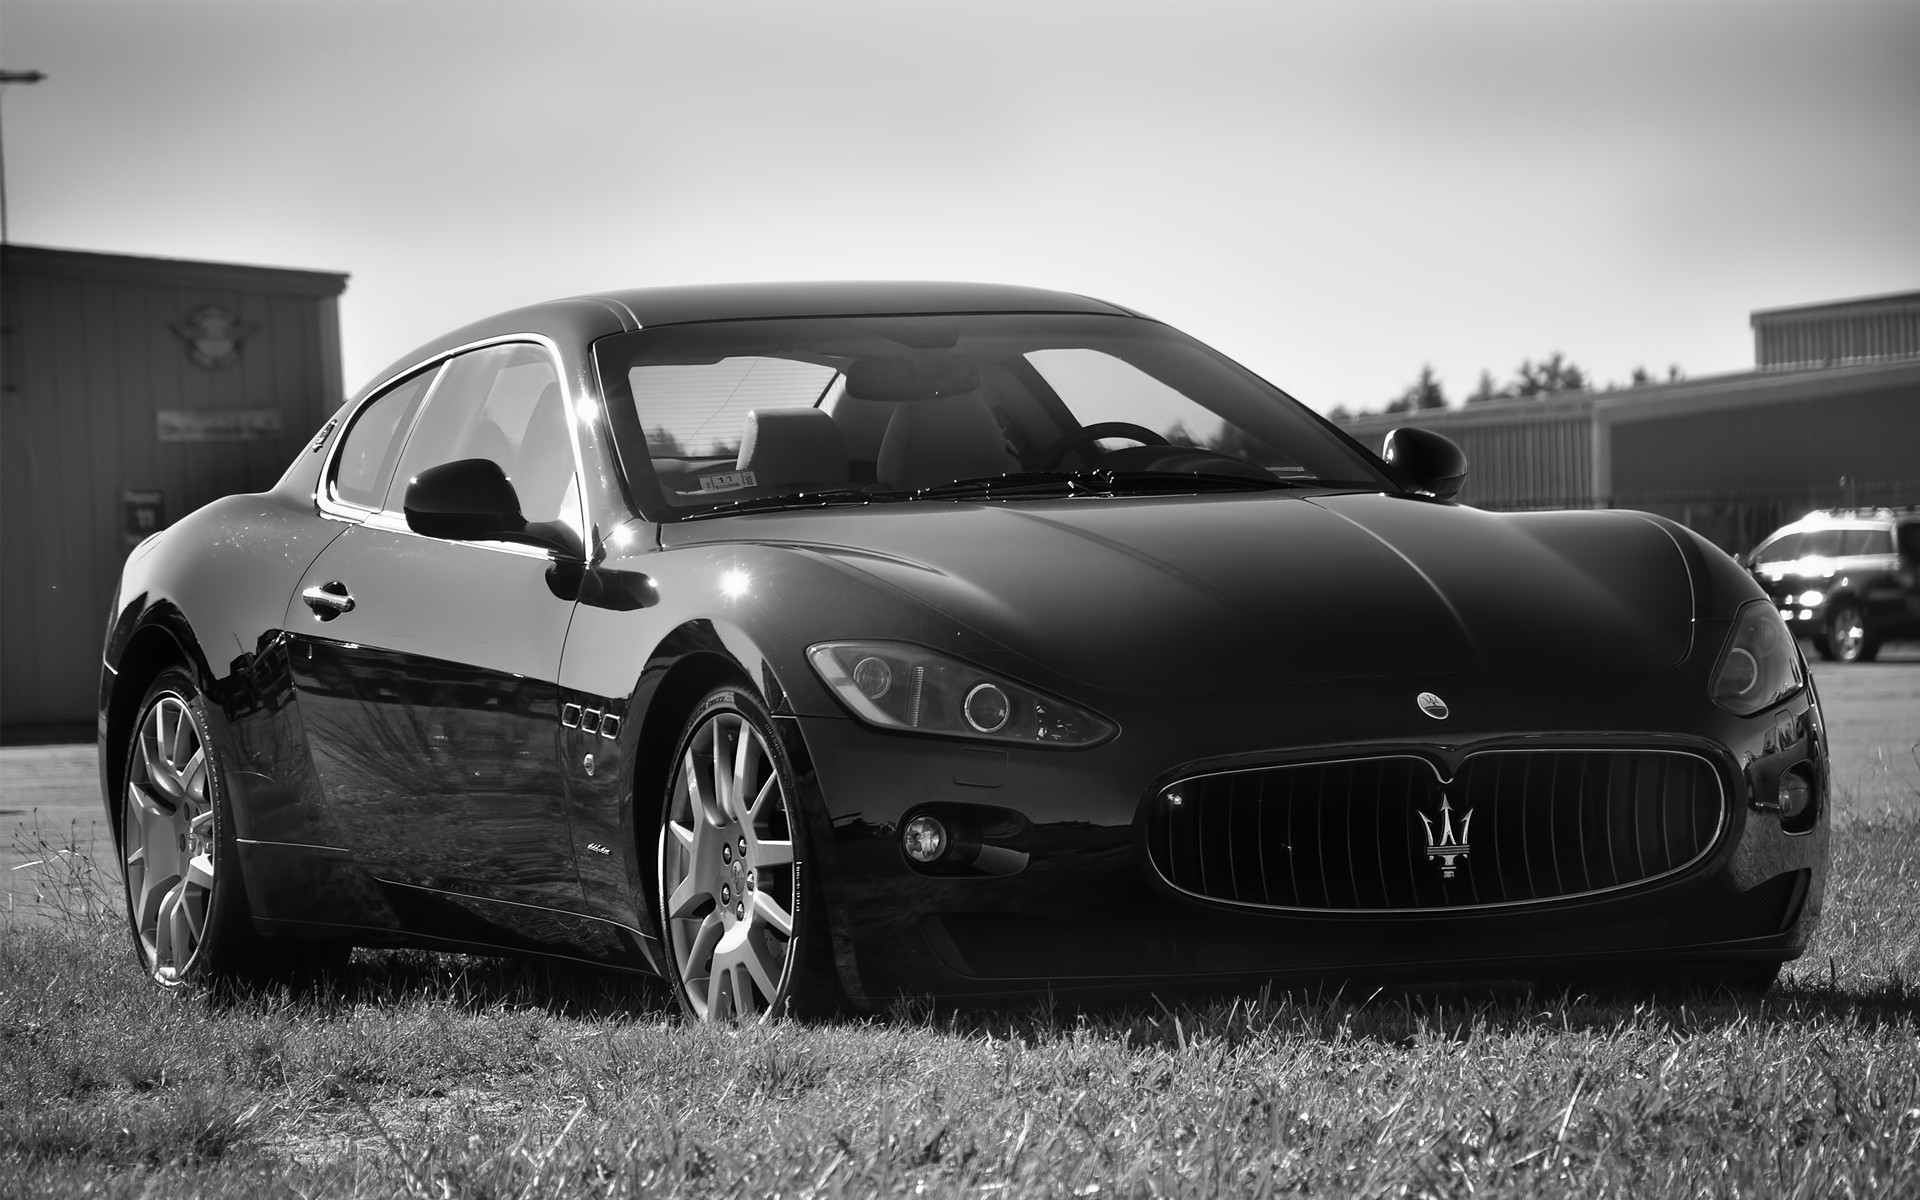 cars, Maserati, grayscale, vehicles - desktop wallpaper